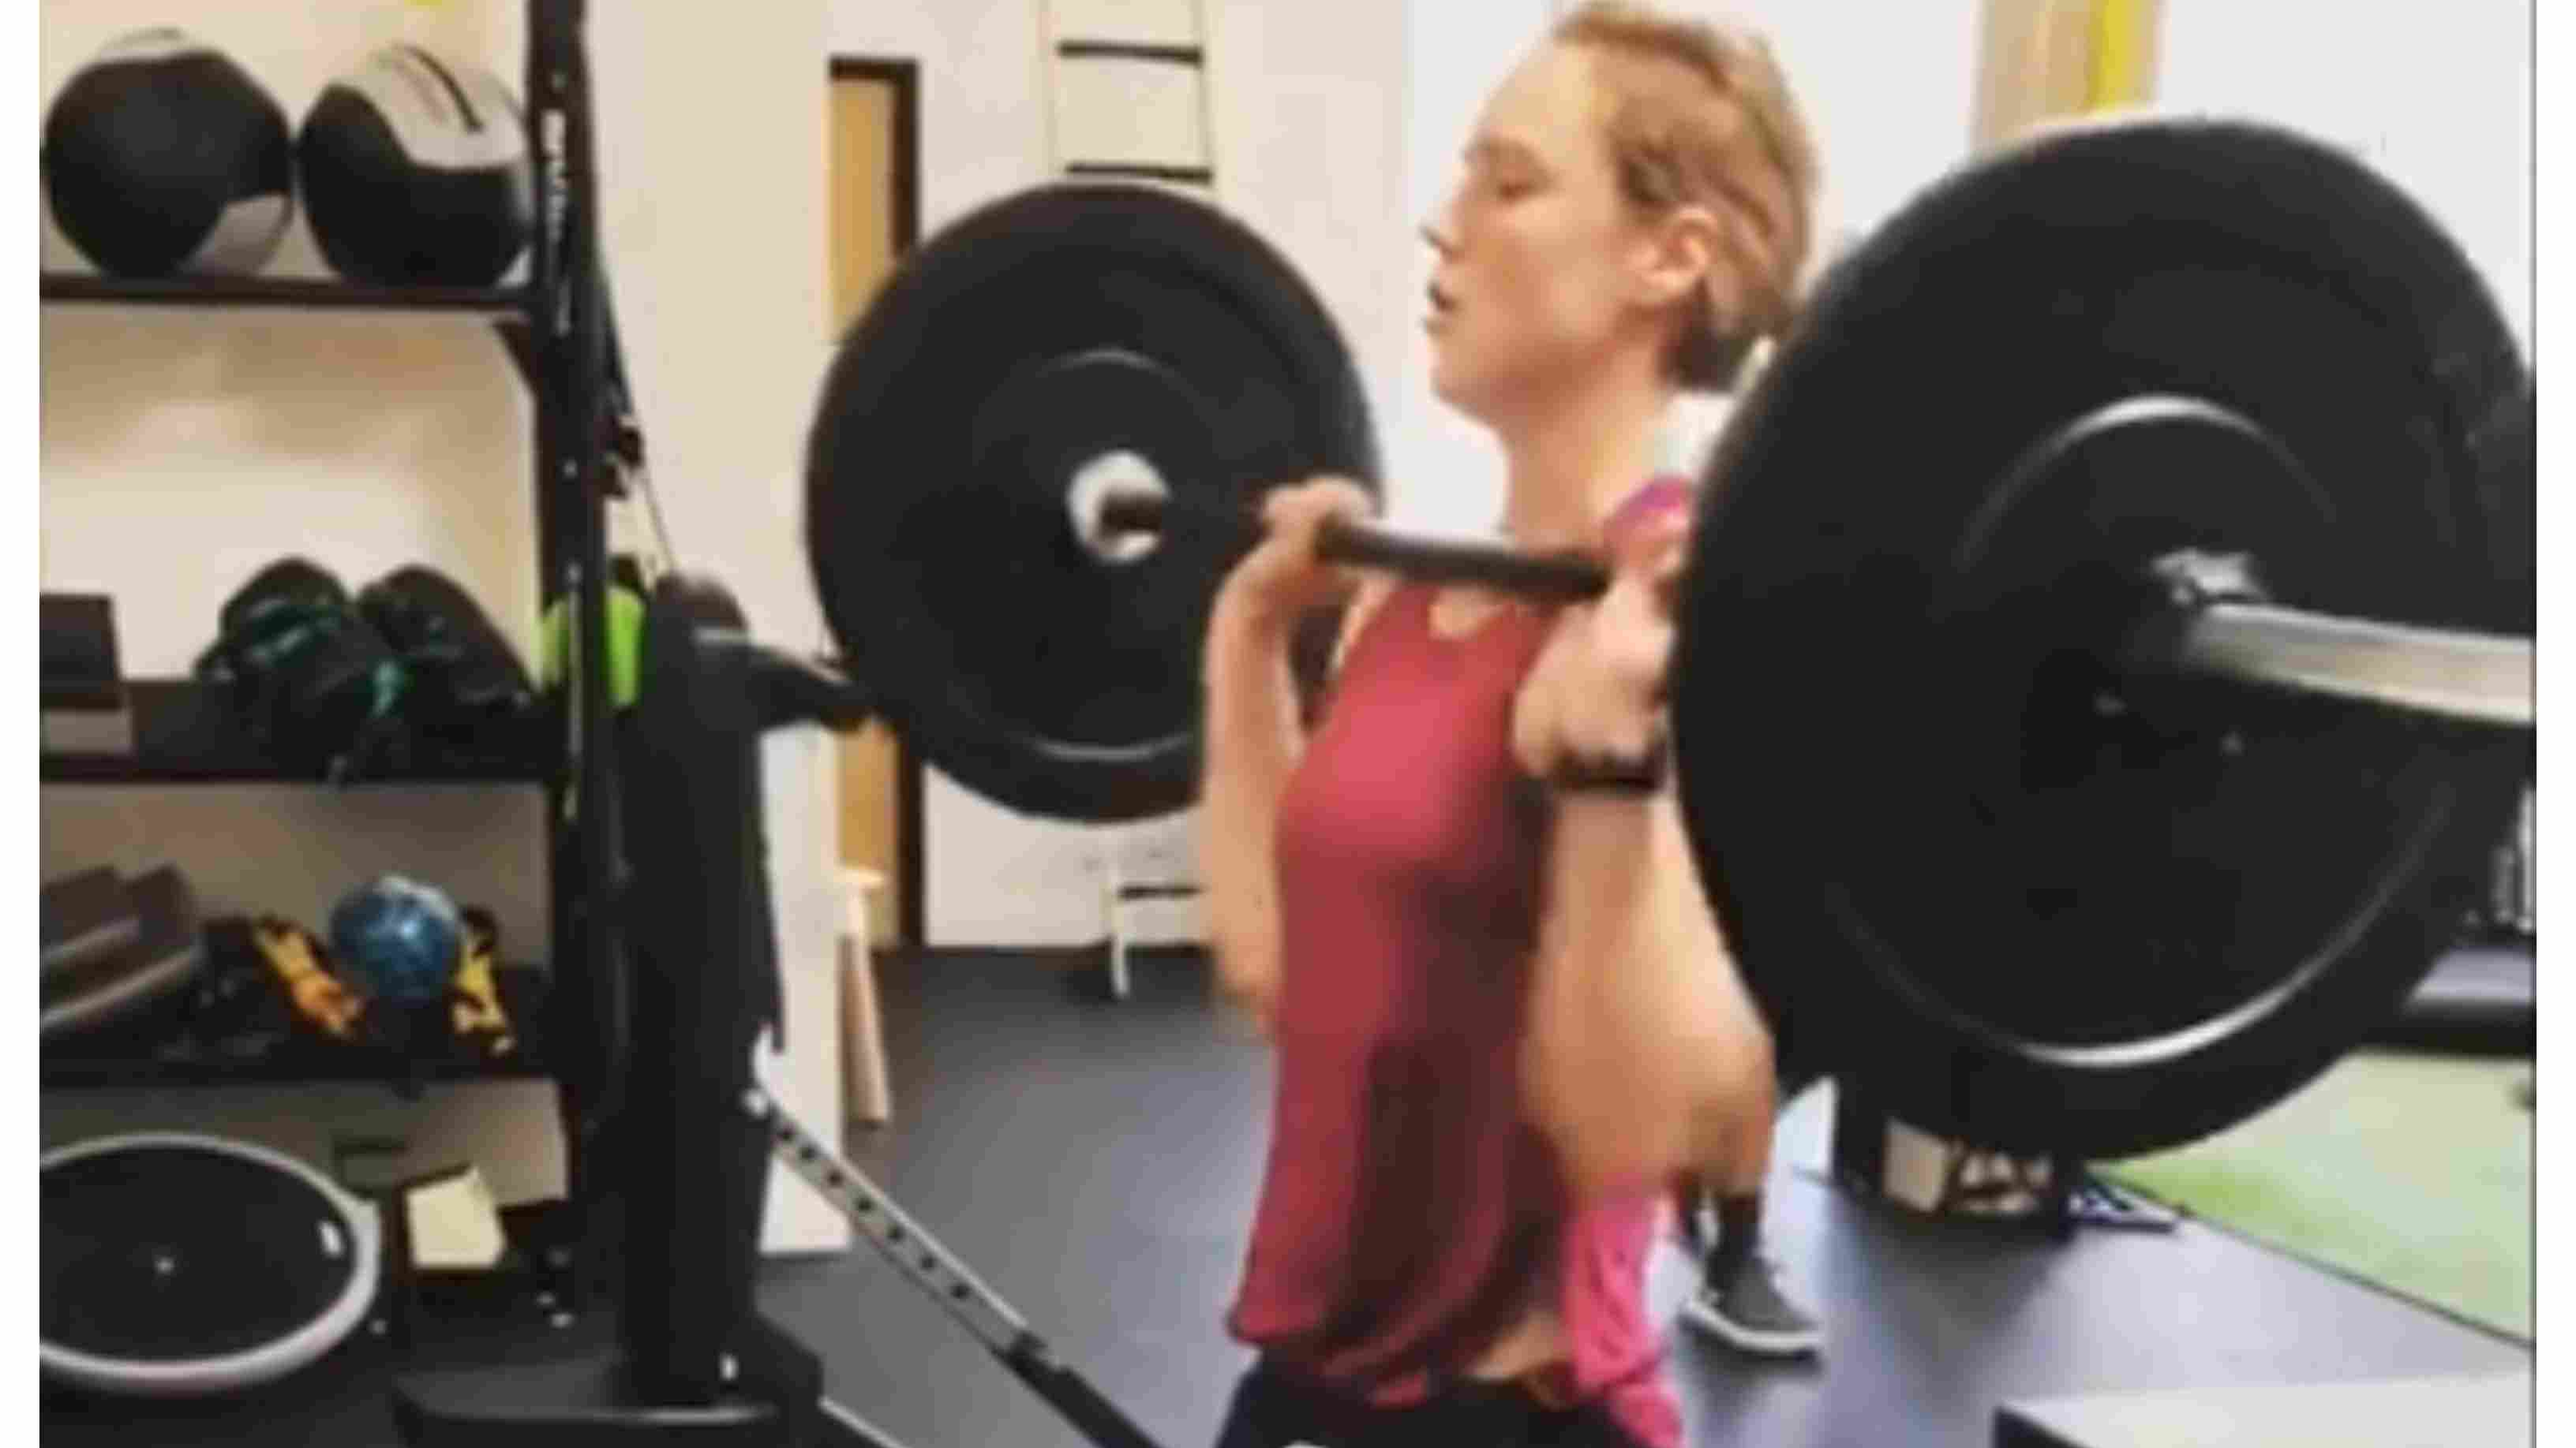 Watch: Ellyse Perry's intense workout session in the gym